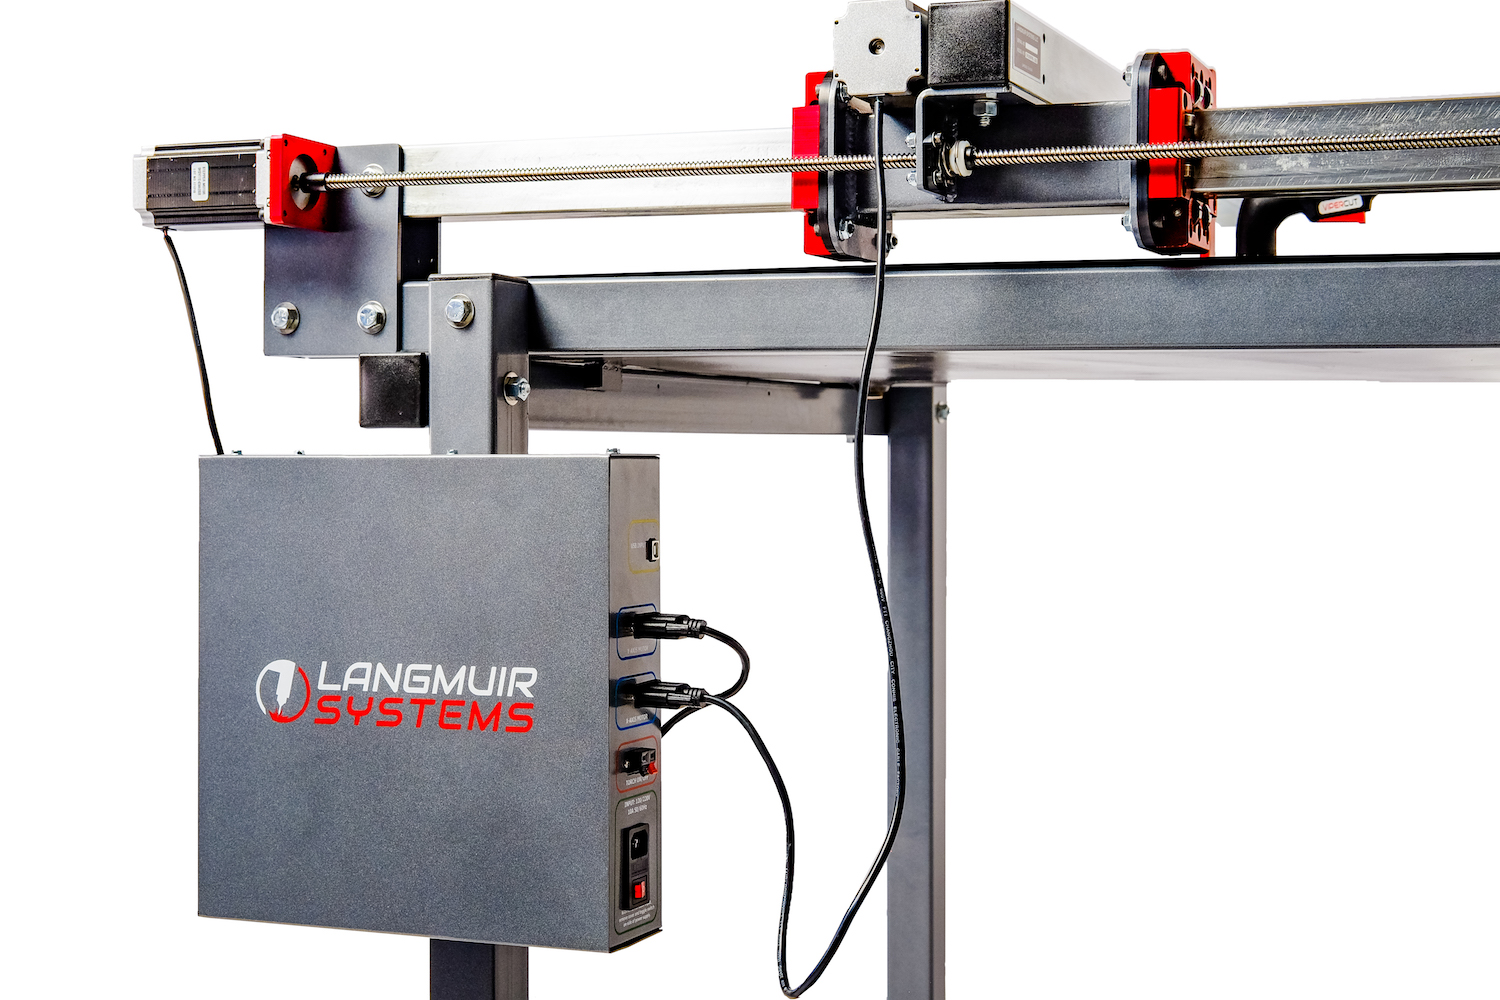 Langmuir Systems Crossfire Cnc Plasma Tables